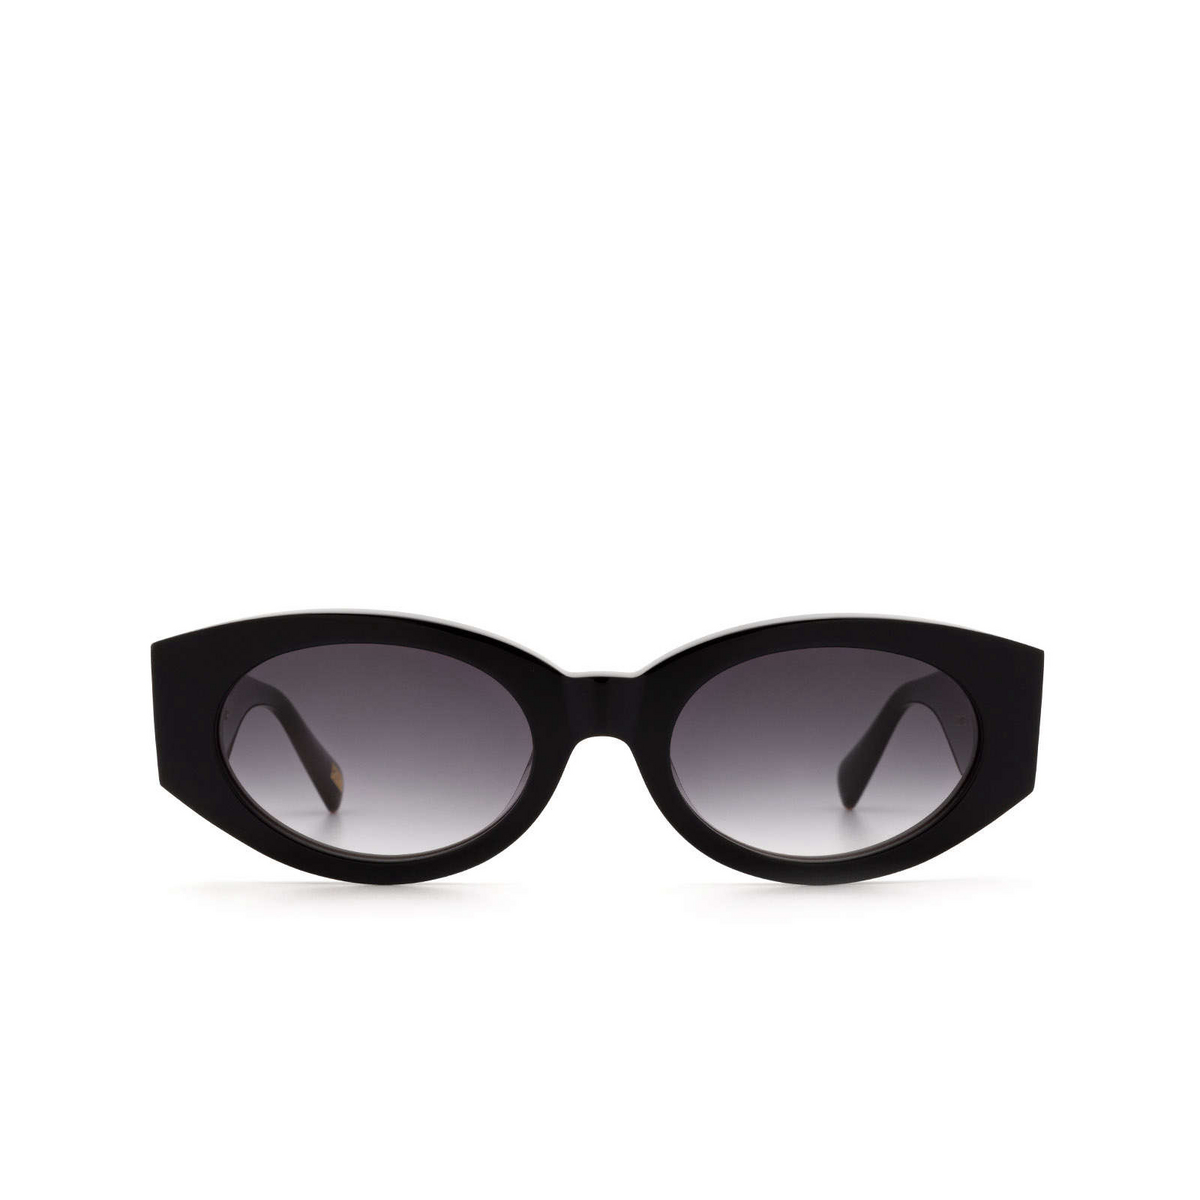 Chimi® Oval Sunglasses: Craftmanship Round color Black - front view.